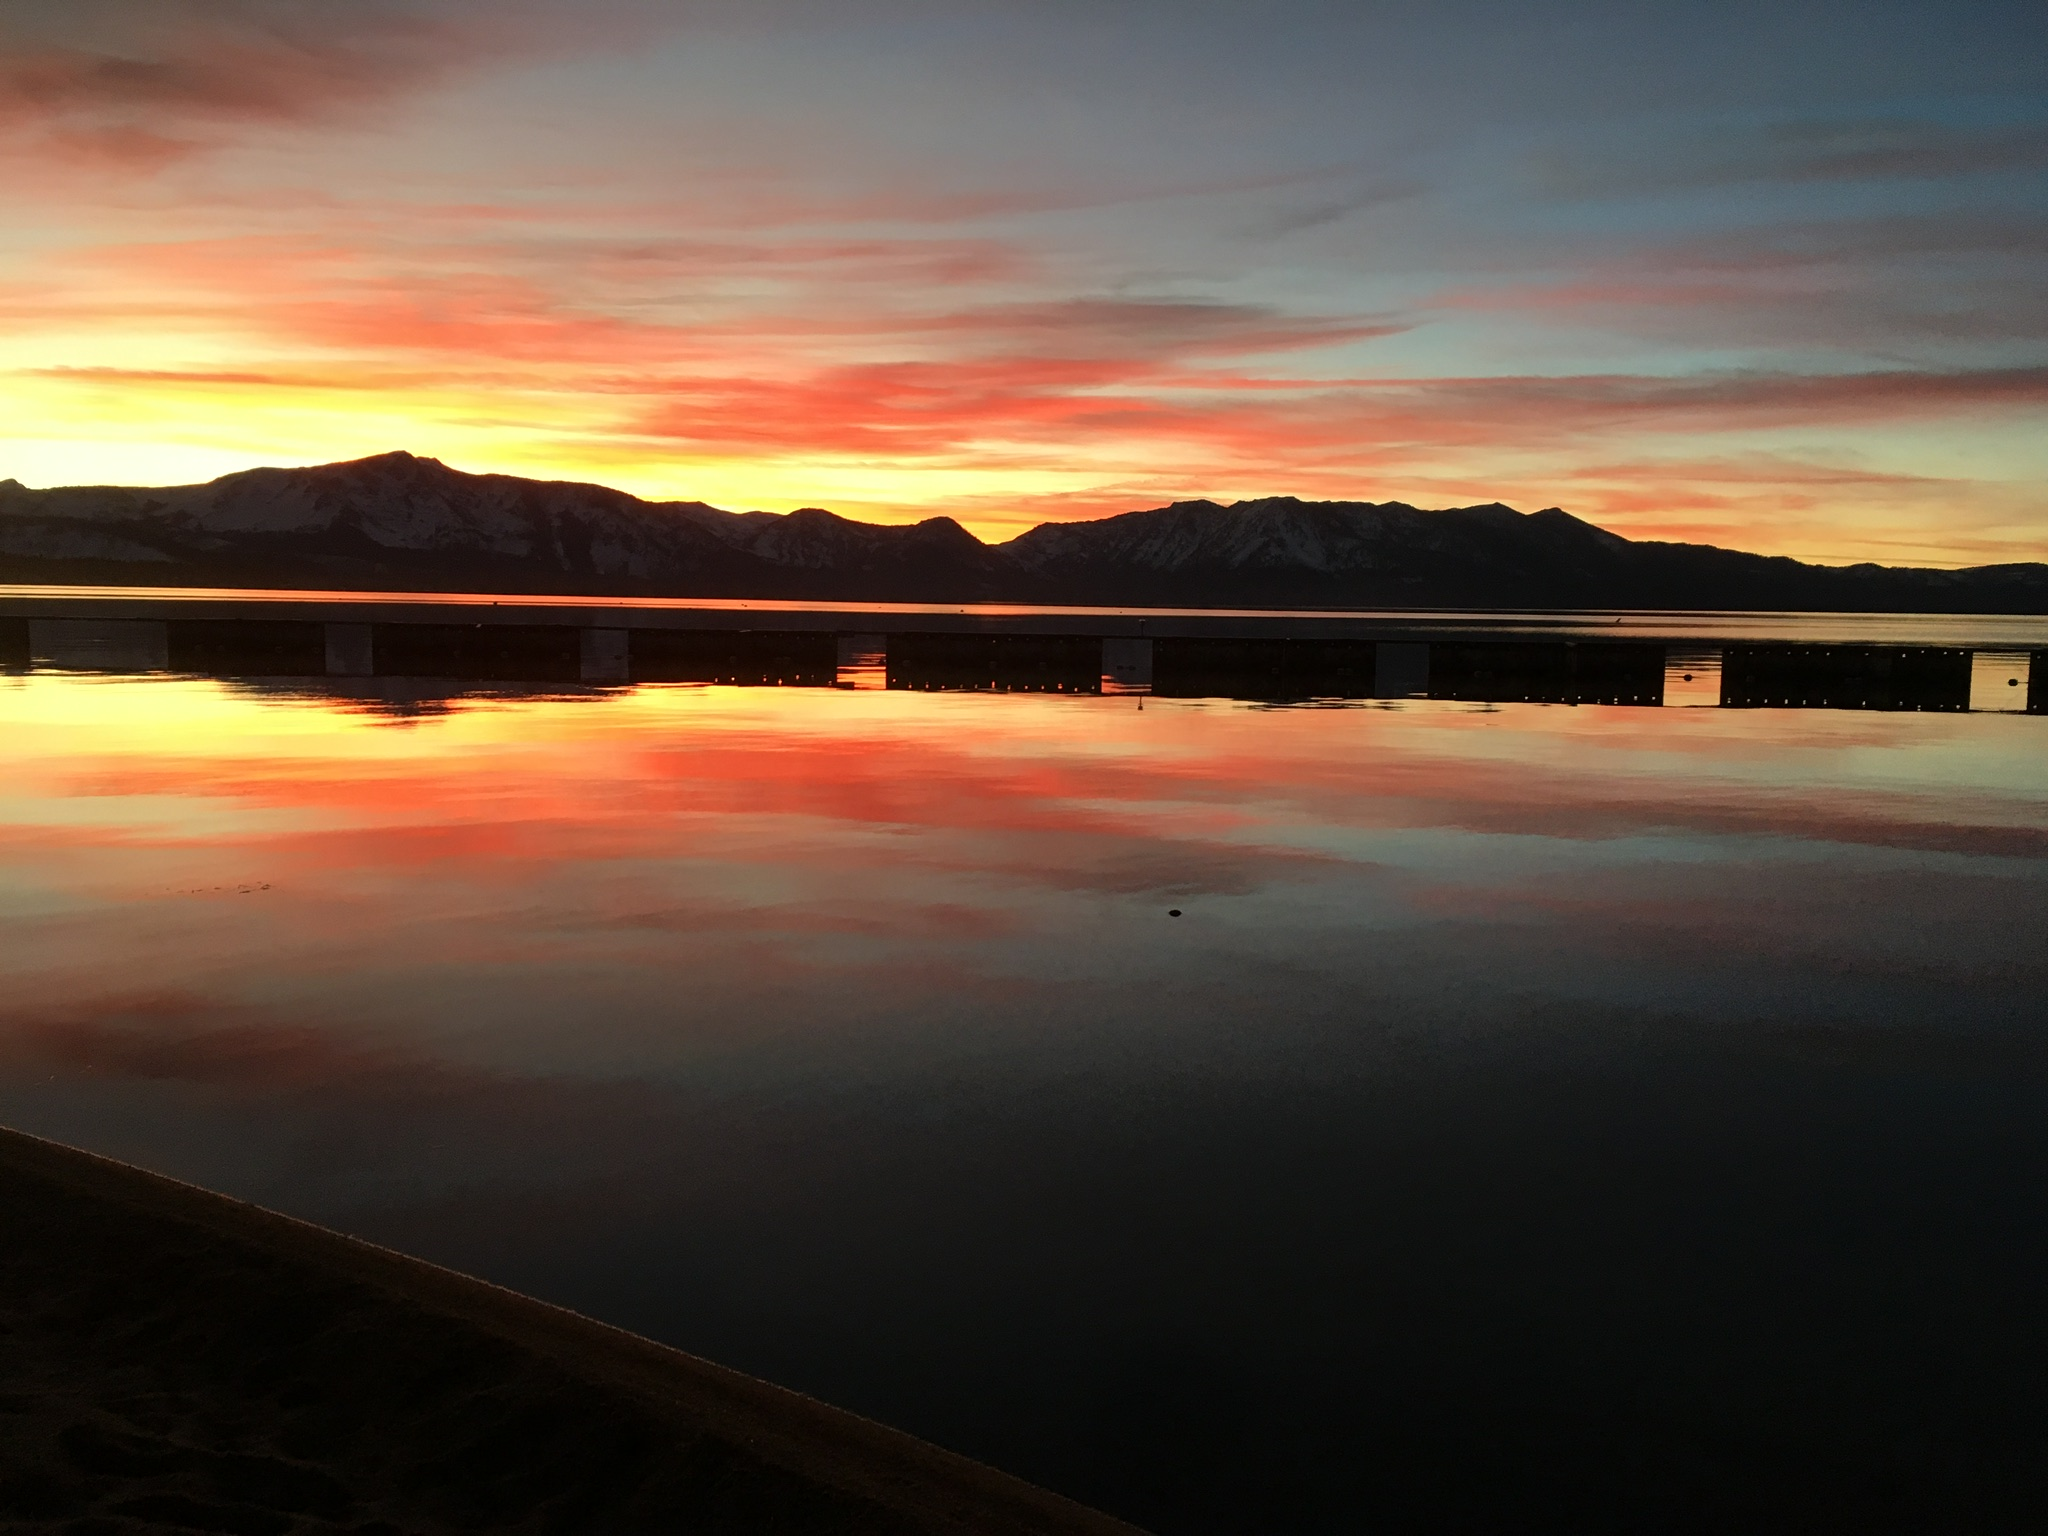 Colorful sunset over Lake Tahoe